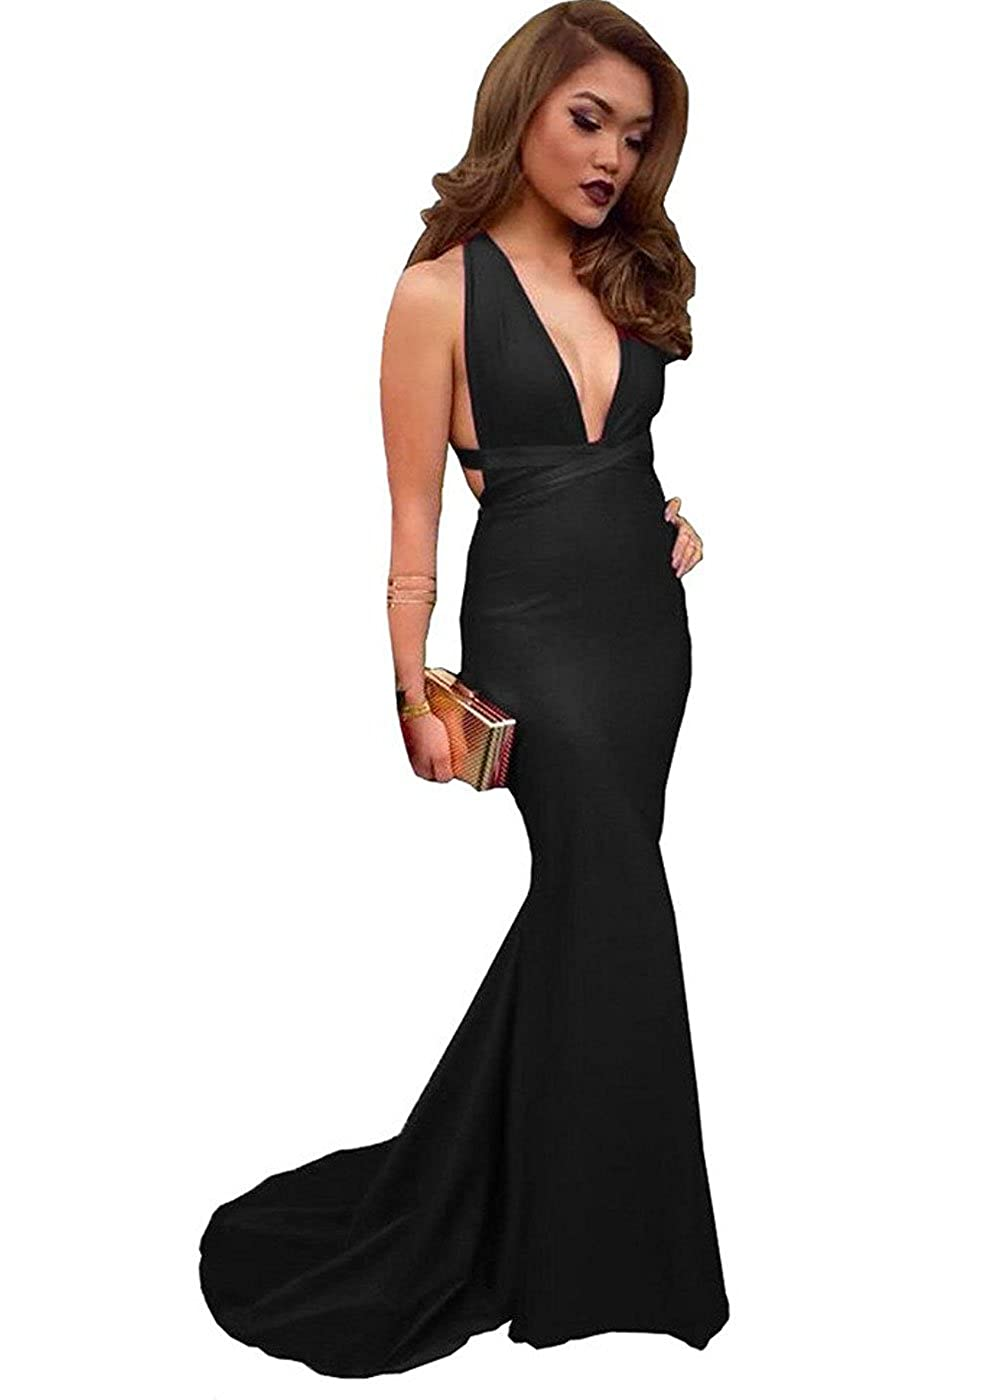 36f35385bad9 Amazon.com  DYS Women s Plunging Neckline Mermiad Prom Dress Long Evening  Formal Dresses  Clothing